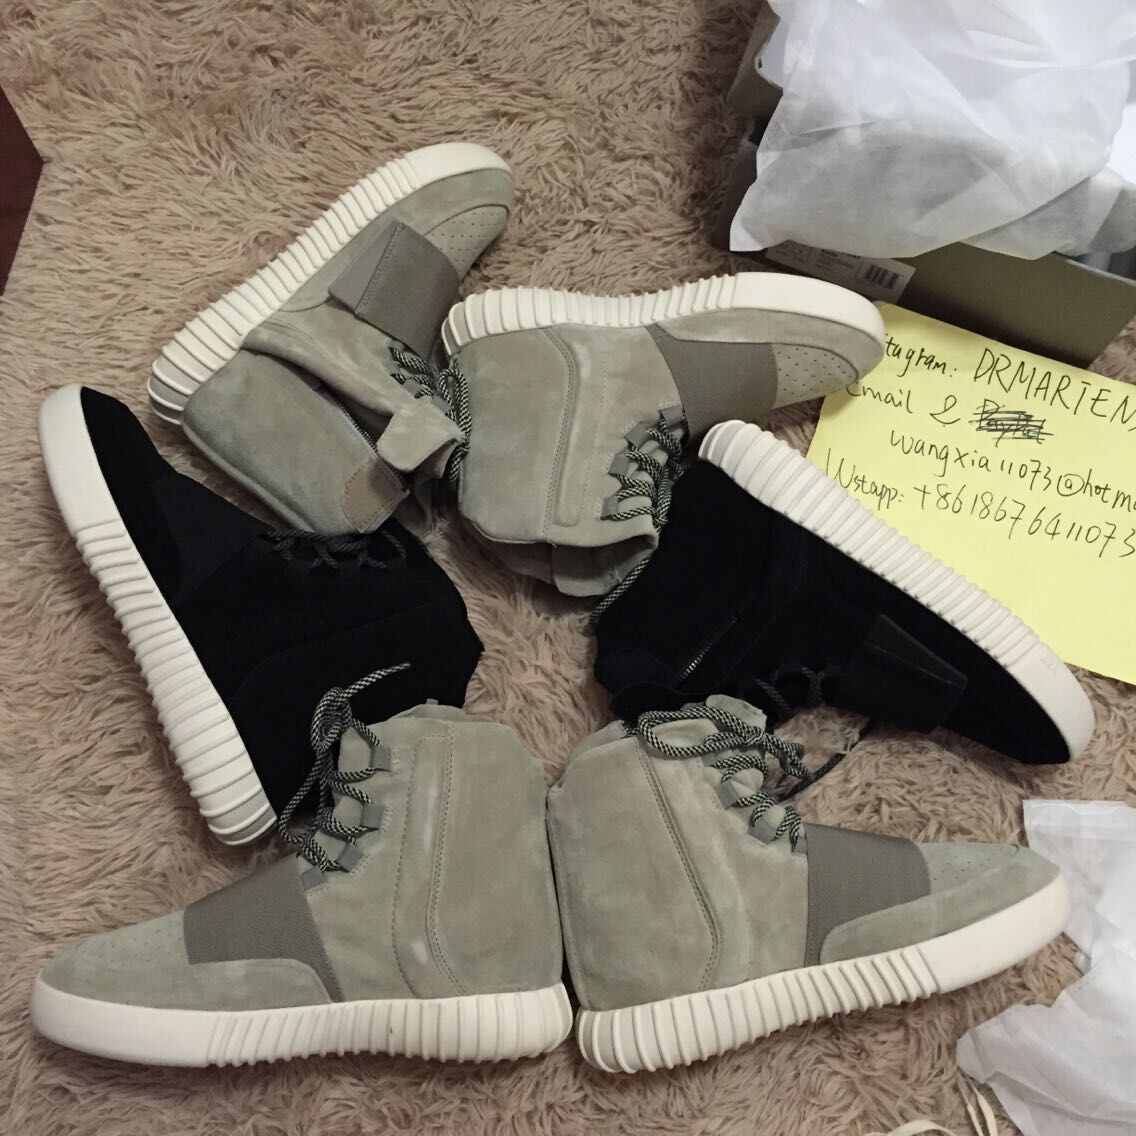 online store a8b50 e18e7 Pin by Shine Wang on Yeezy 750 Boost | Yeezy, Yeezy boost ...